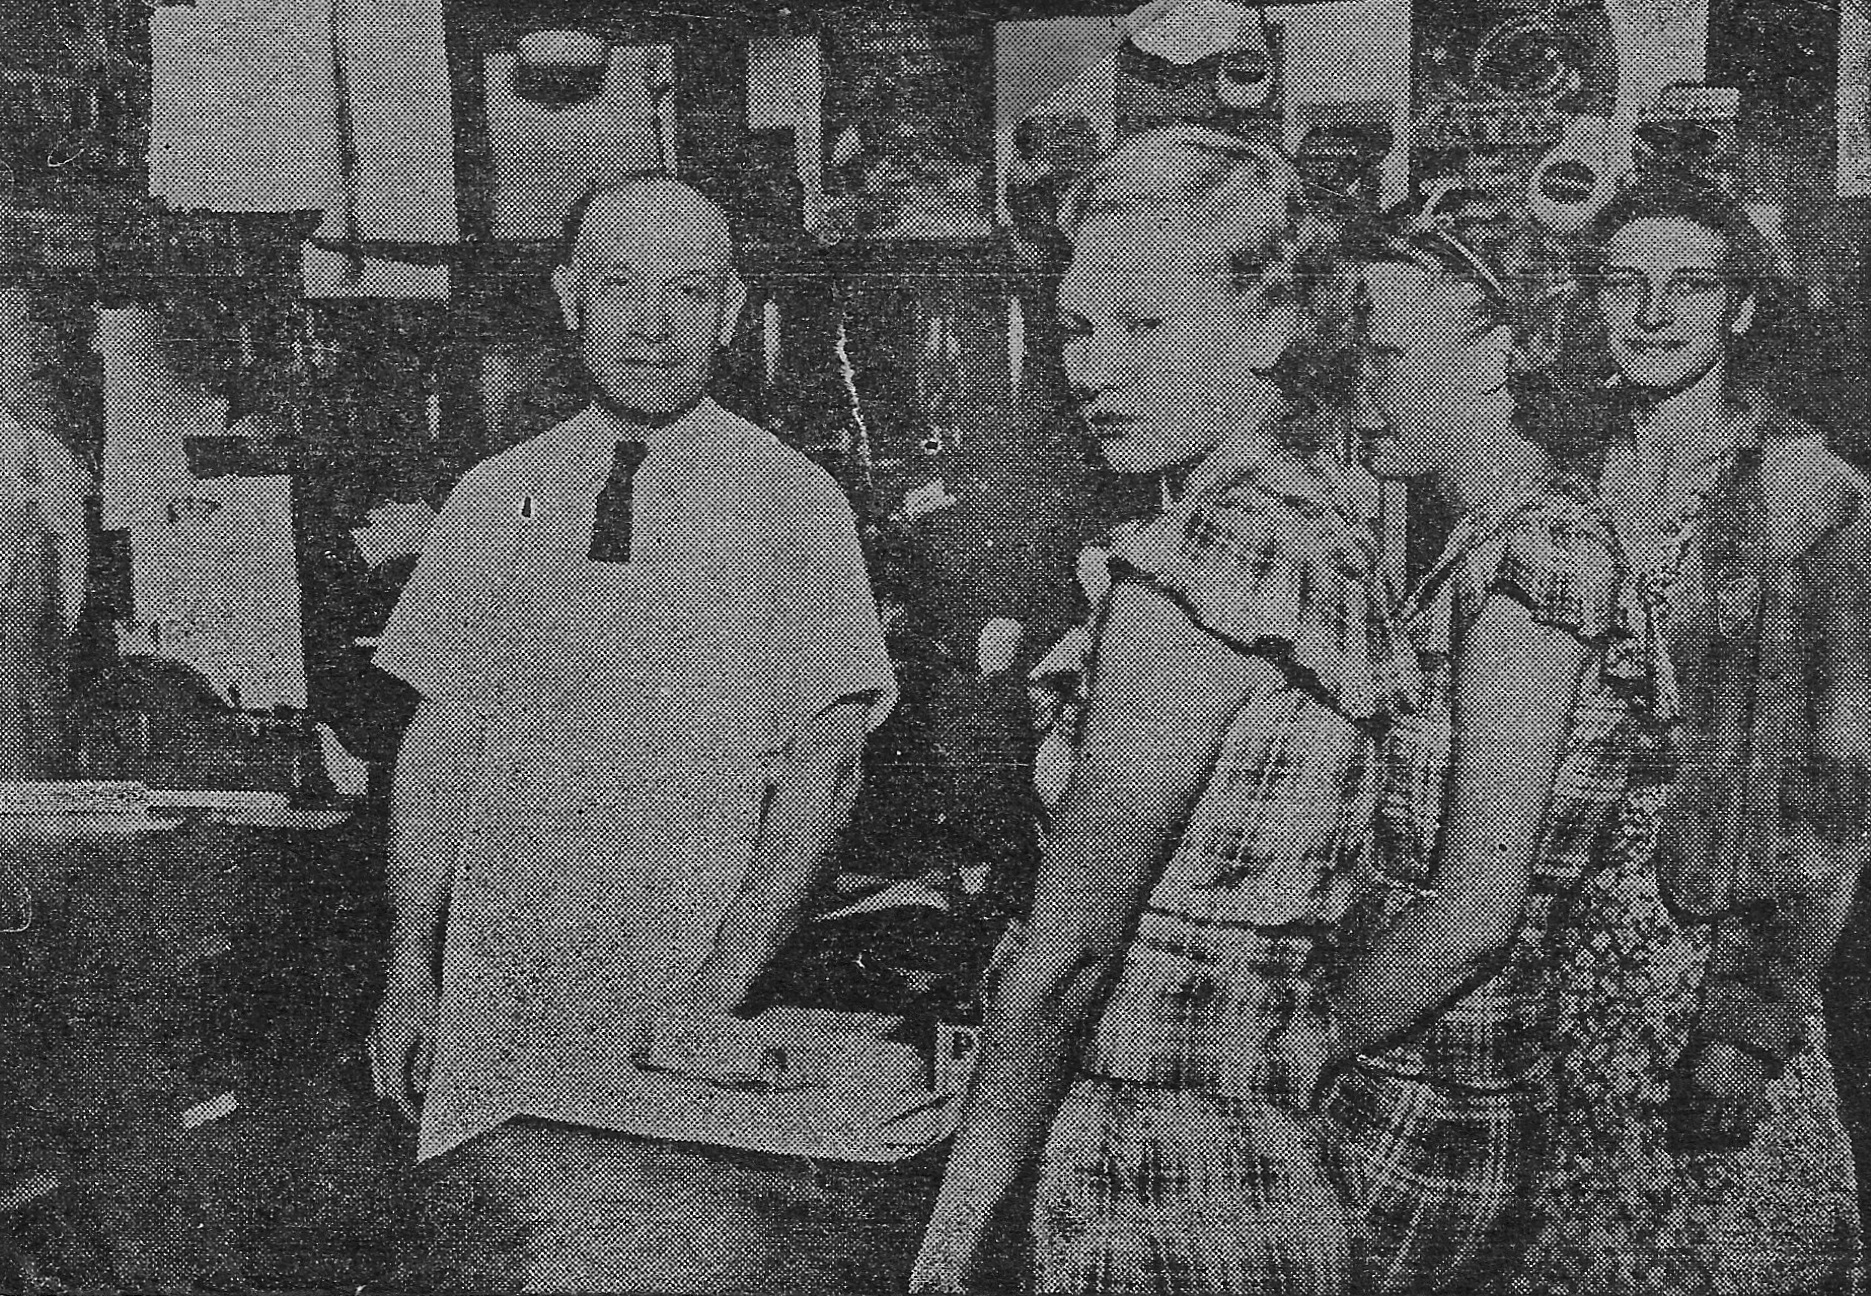 Grocery store owner Oscar Gallas is with customers Tillie and Irene Spanier, and Evelyn Hazel in this 1934 photograph.